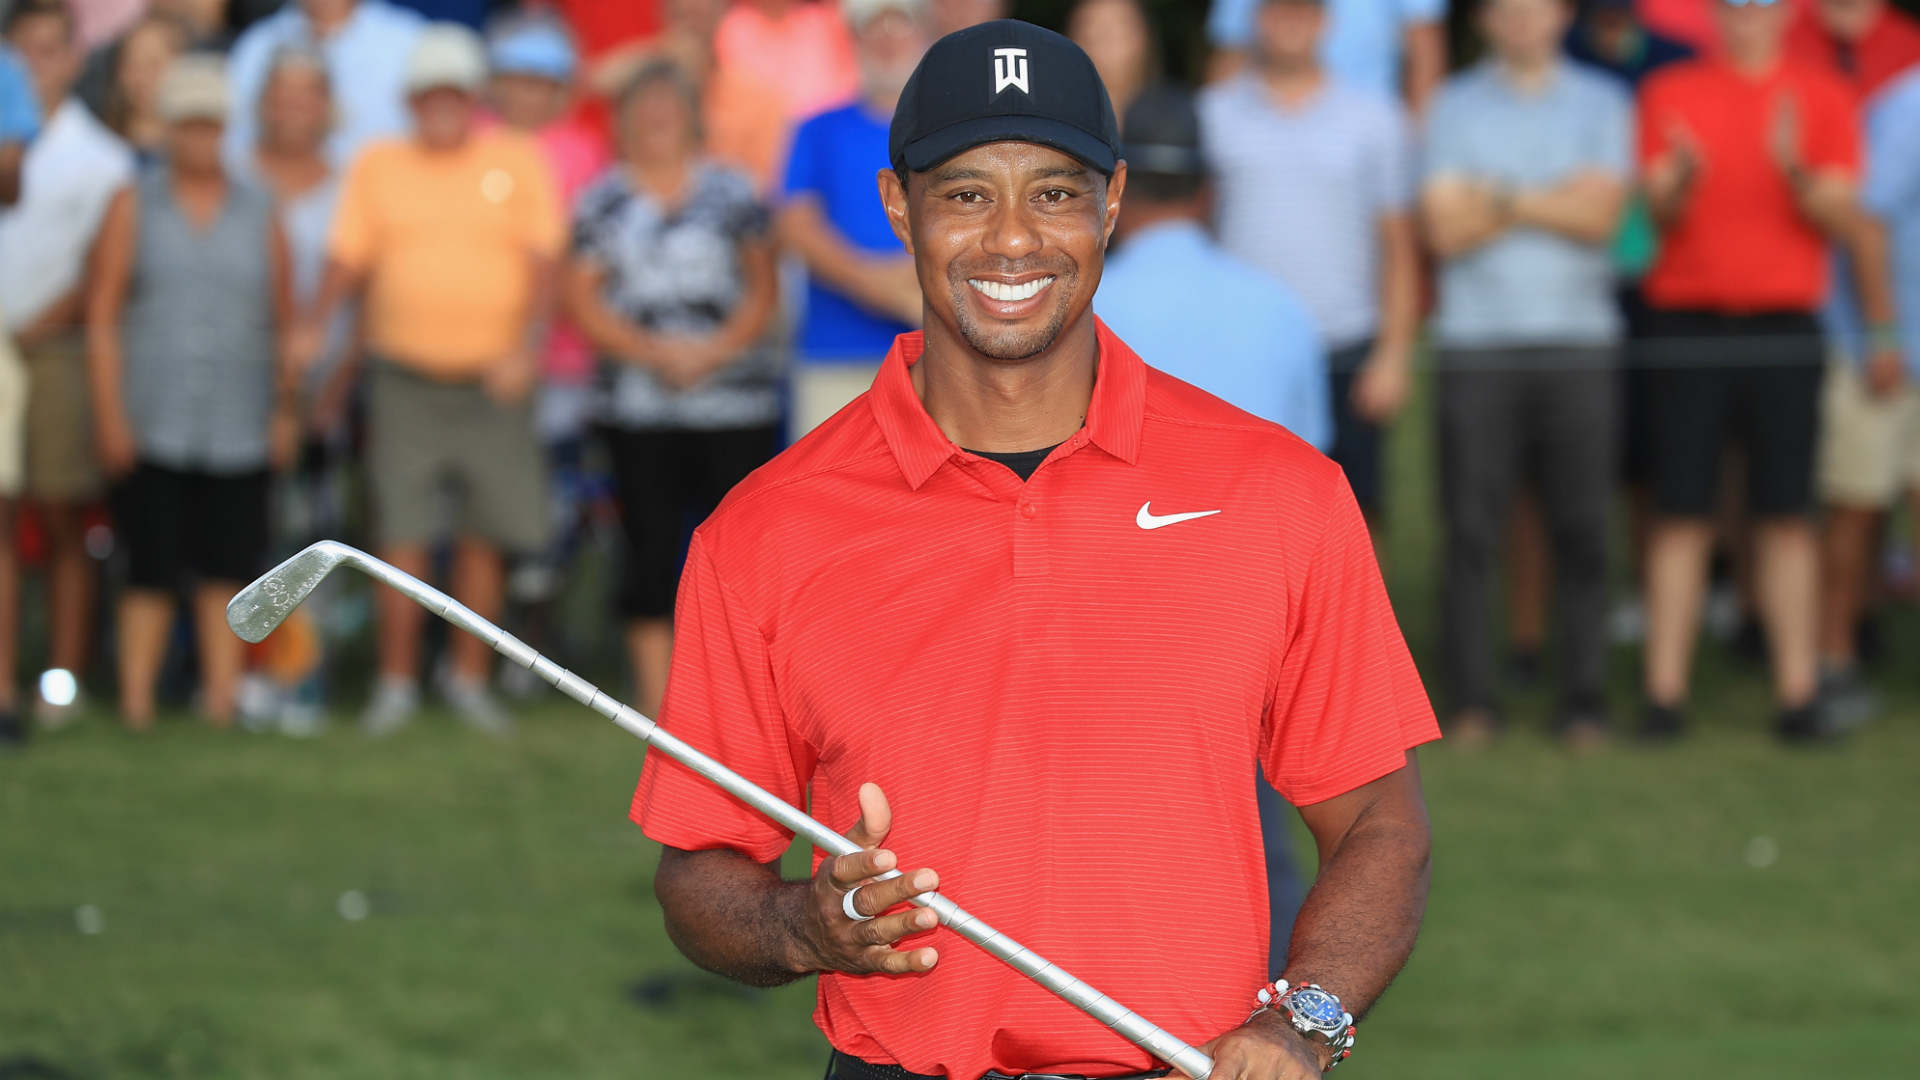 Tiger Woods finally breaks through and tastes victory again